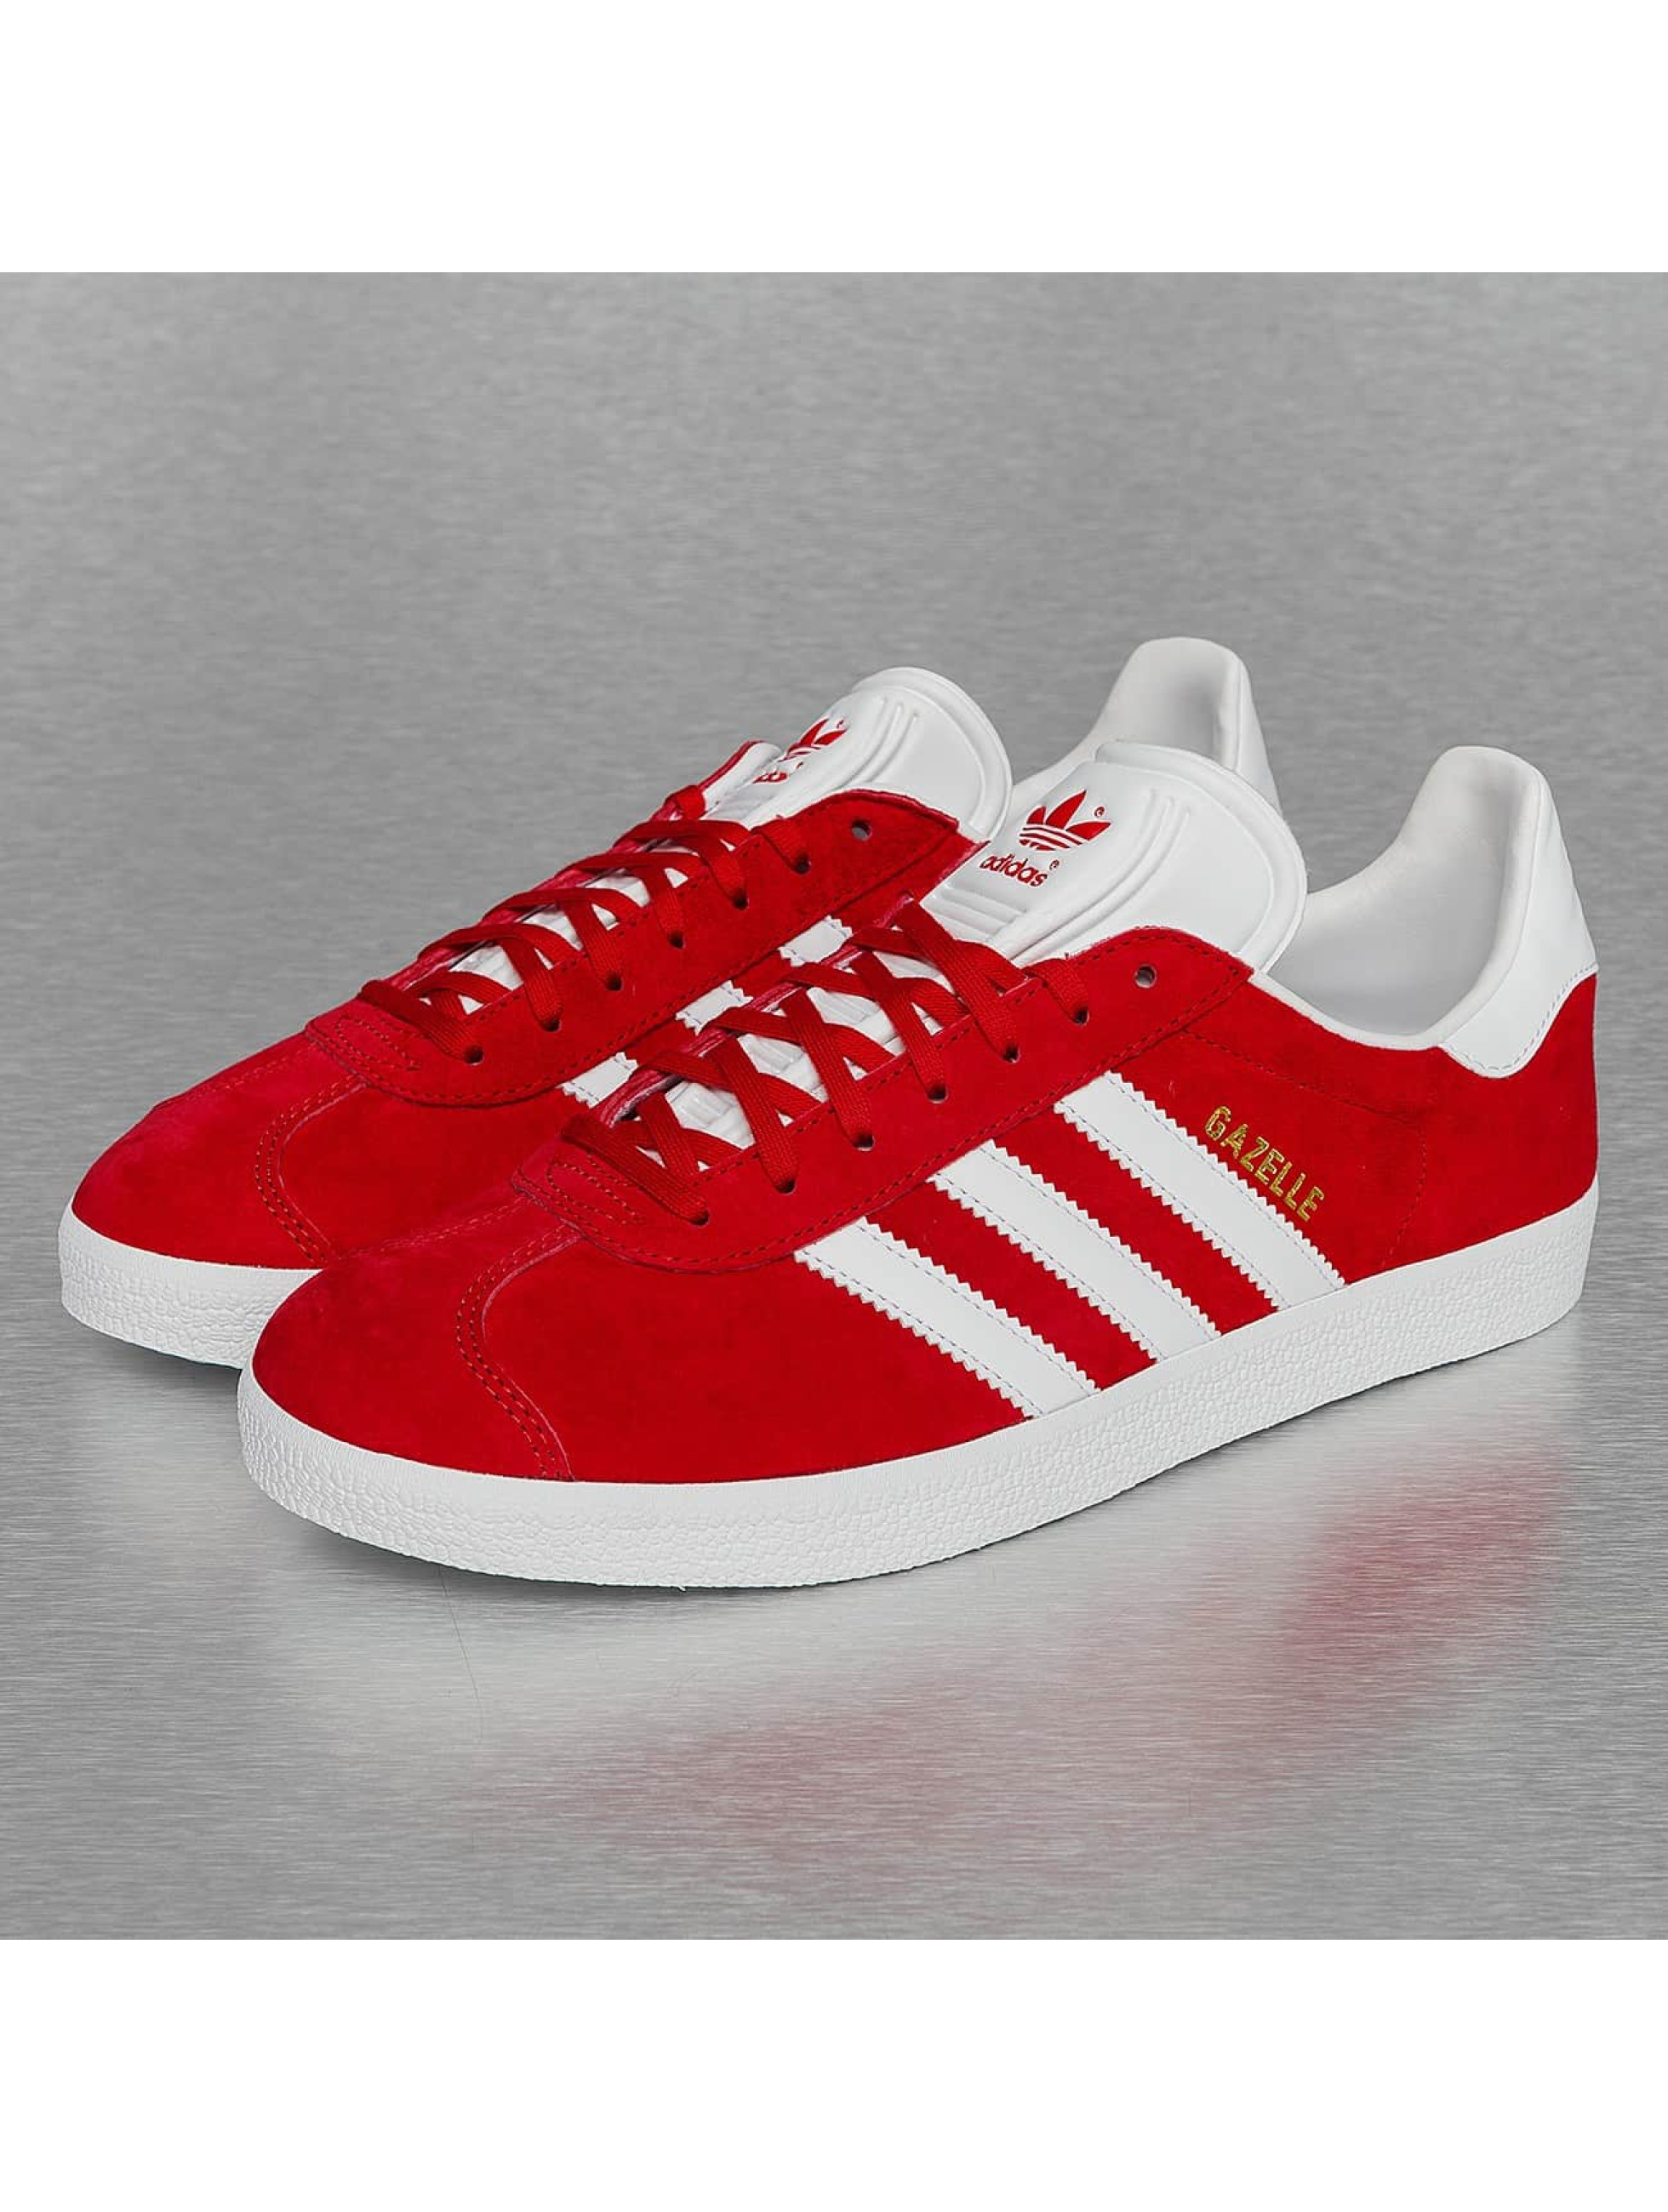 adidas gazelle rood kind